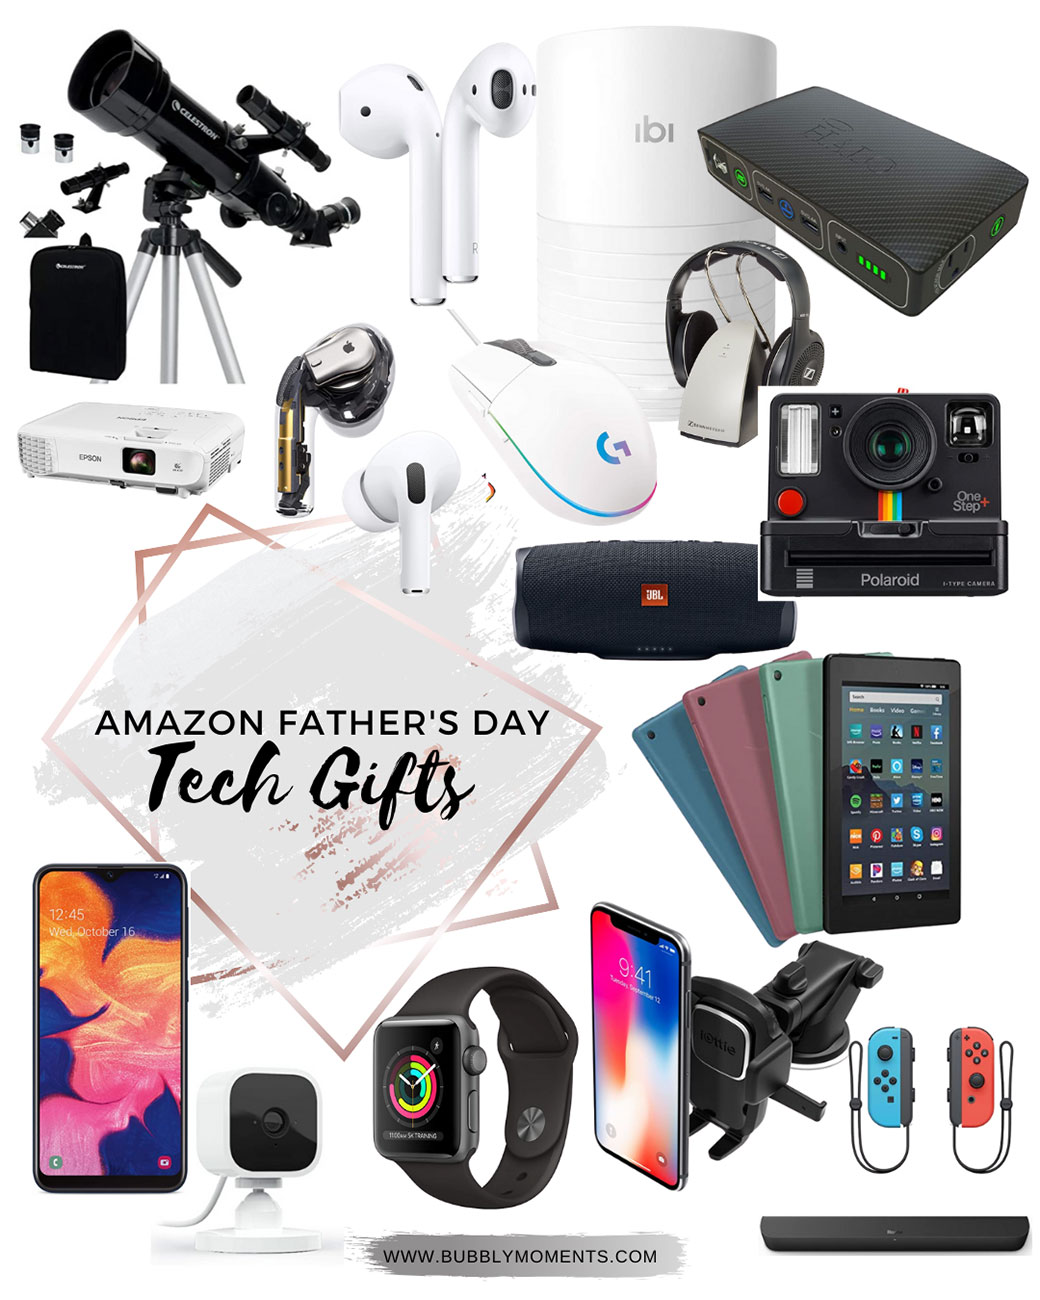 Amazon Fathers Day Gift Guide Ideas | Bubbly Moments